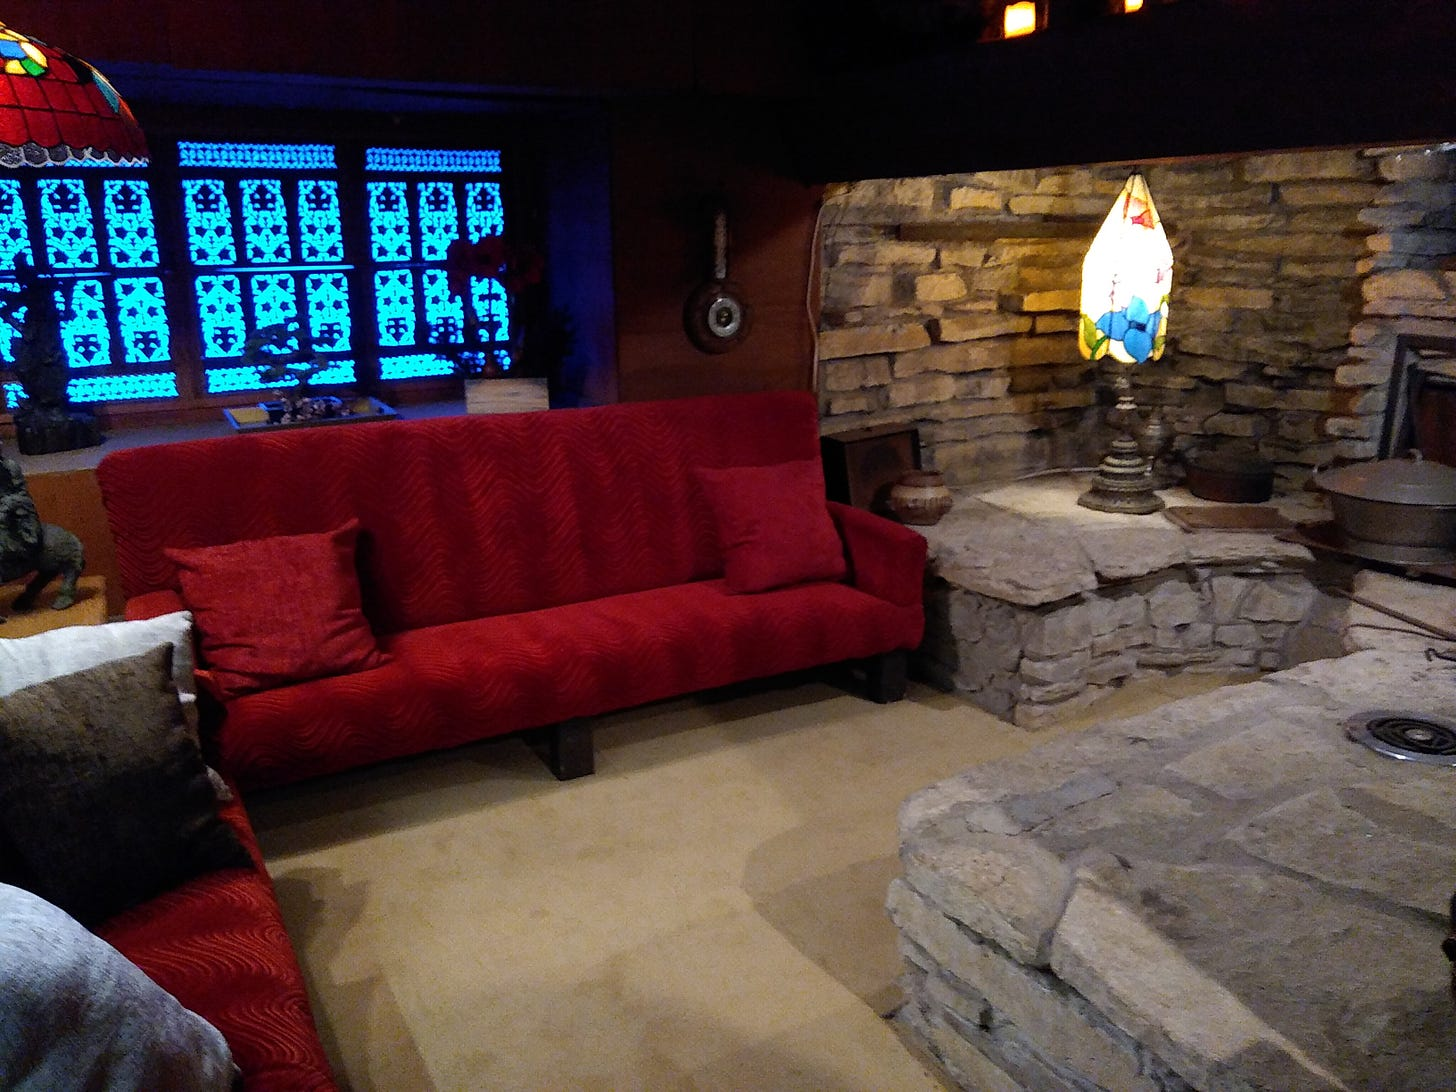 Living room with natural rock brick walls, Indian wooden screen on window, sofa